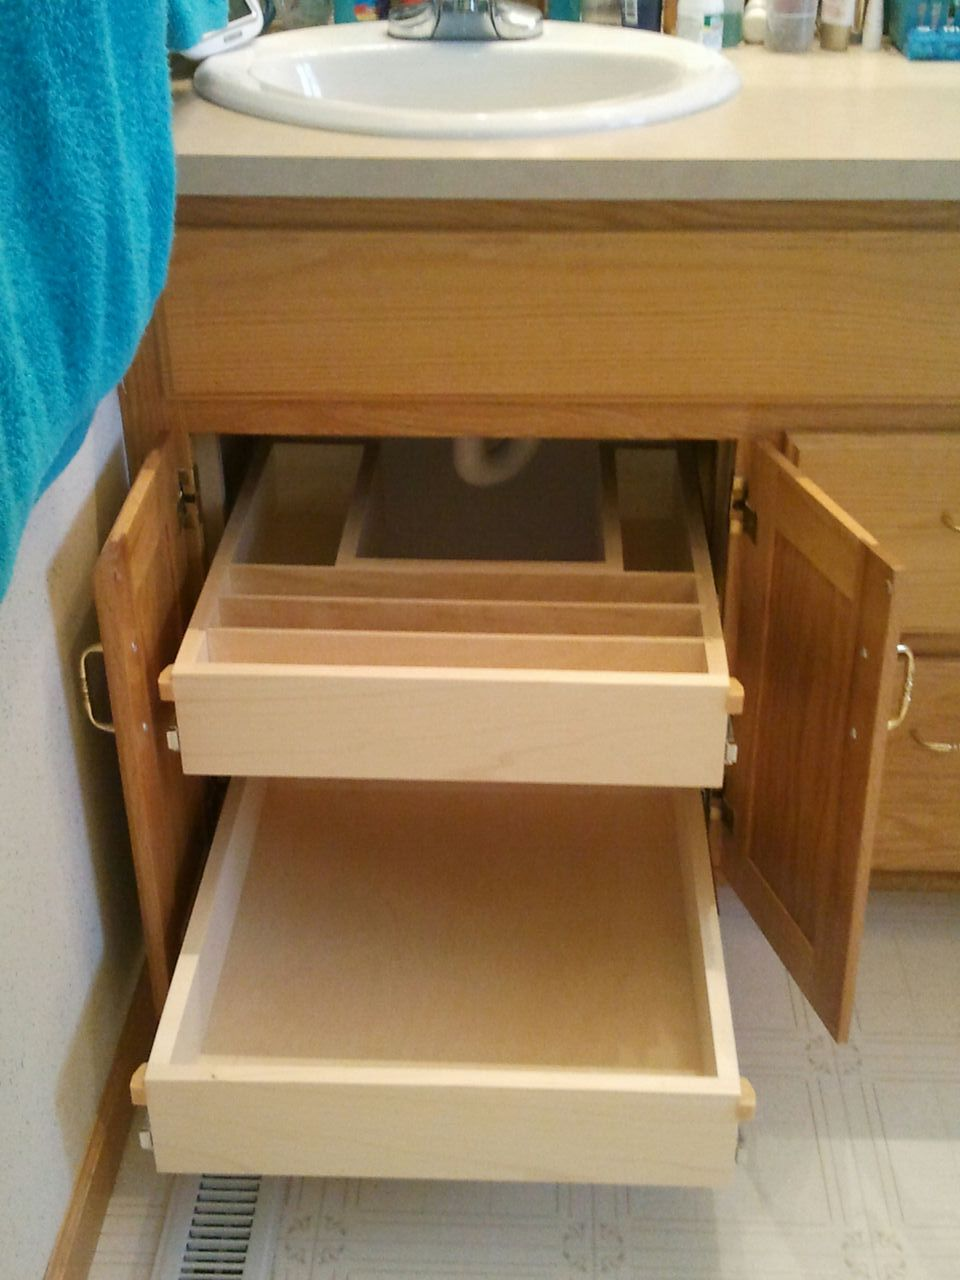 Under Sink Roll Outs Maximize Your Cabinet Space Www Helpyourshelves Com Under Sink Organization Bathroom Bathroom Drawers Under Sink Drawer [ 1280 x 960 Pixel ]